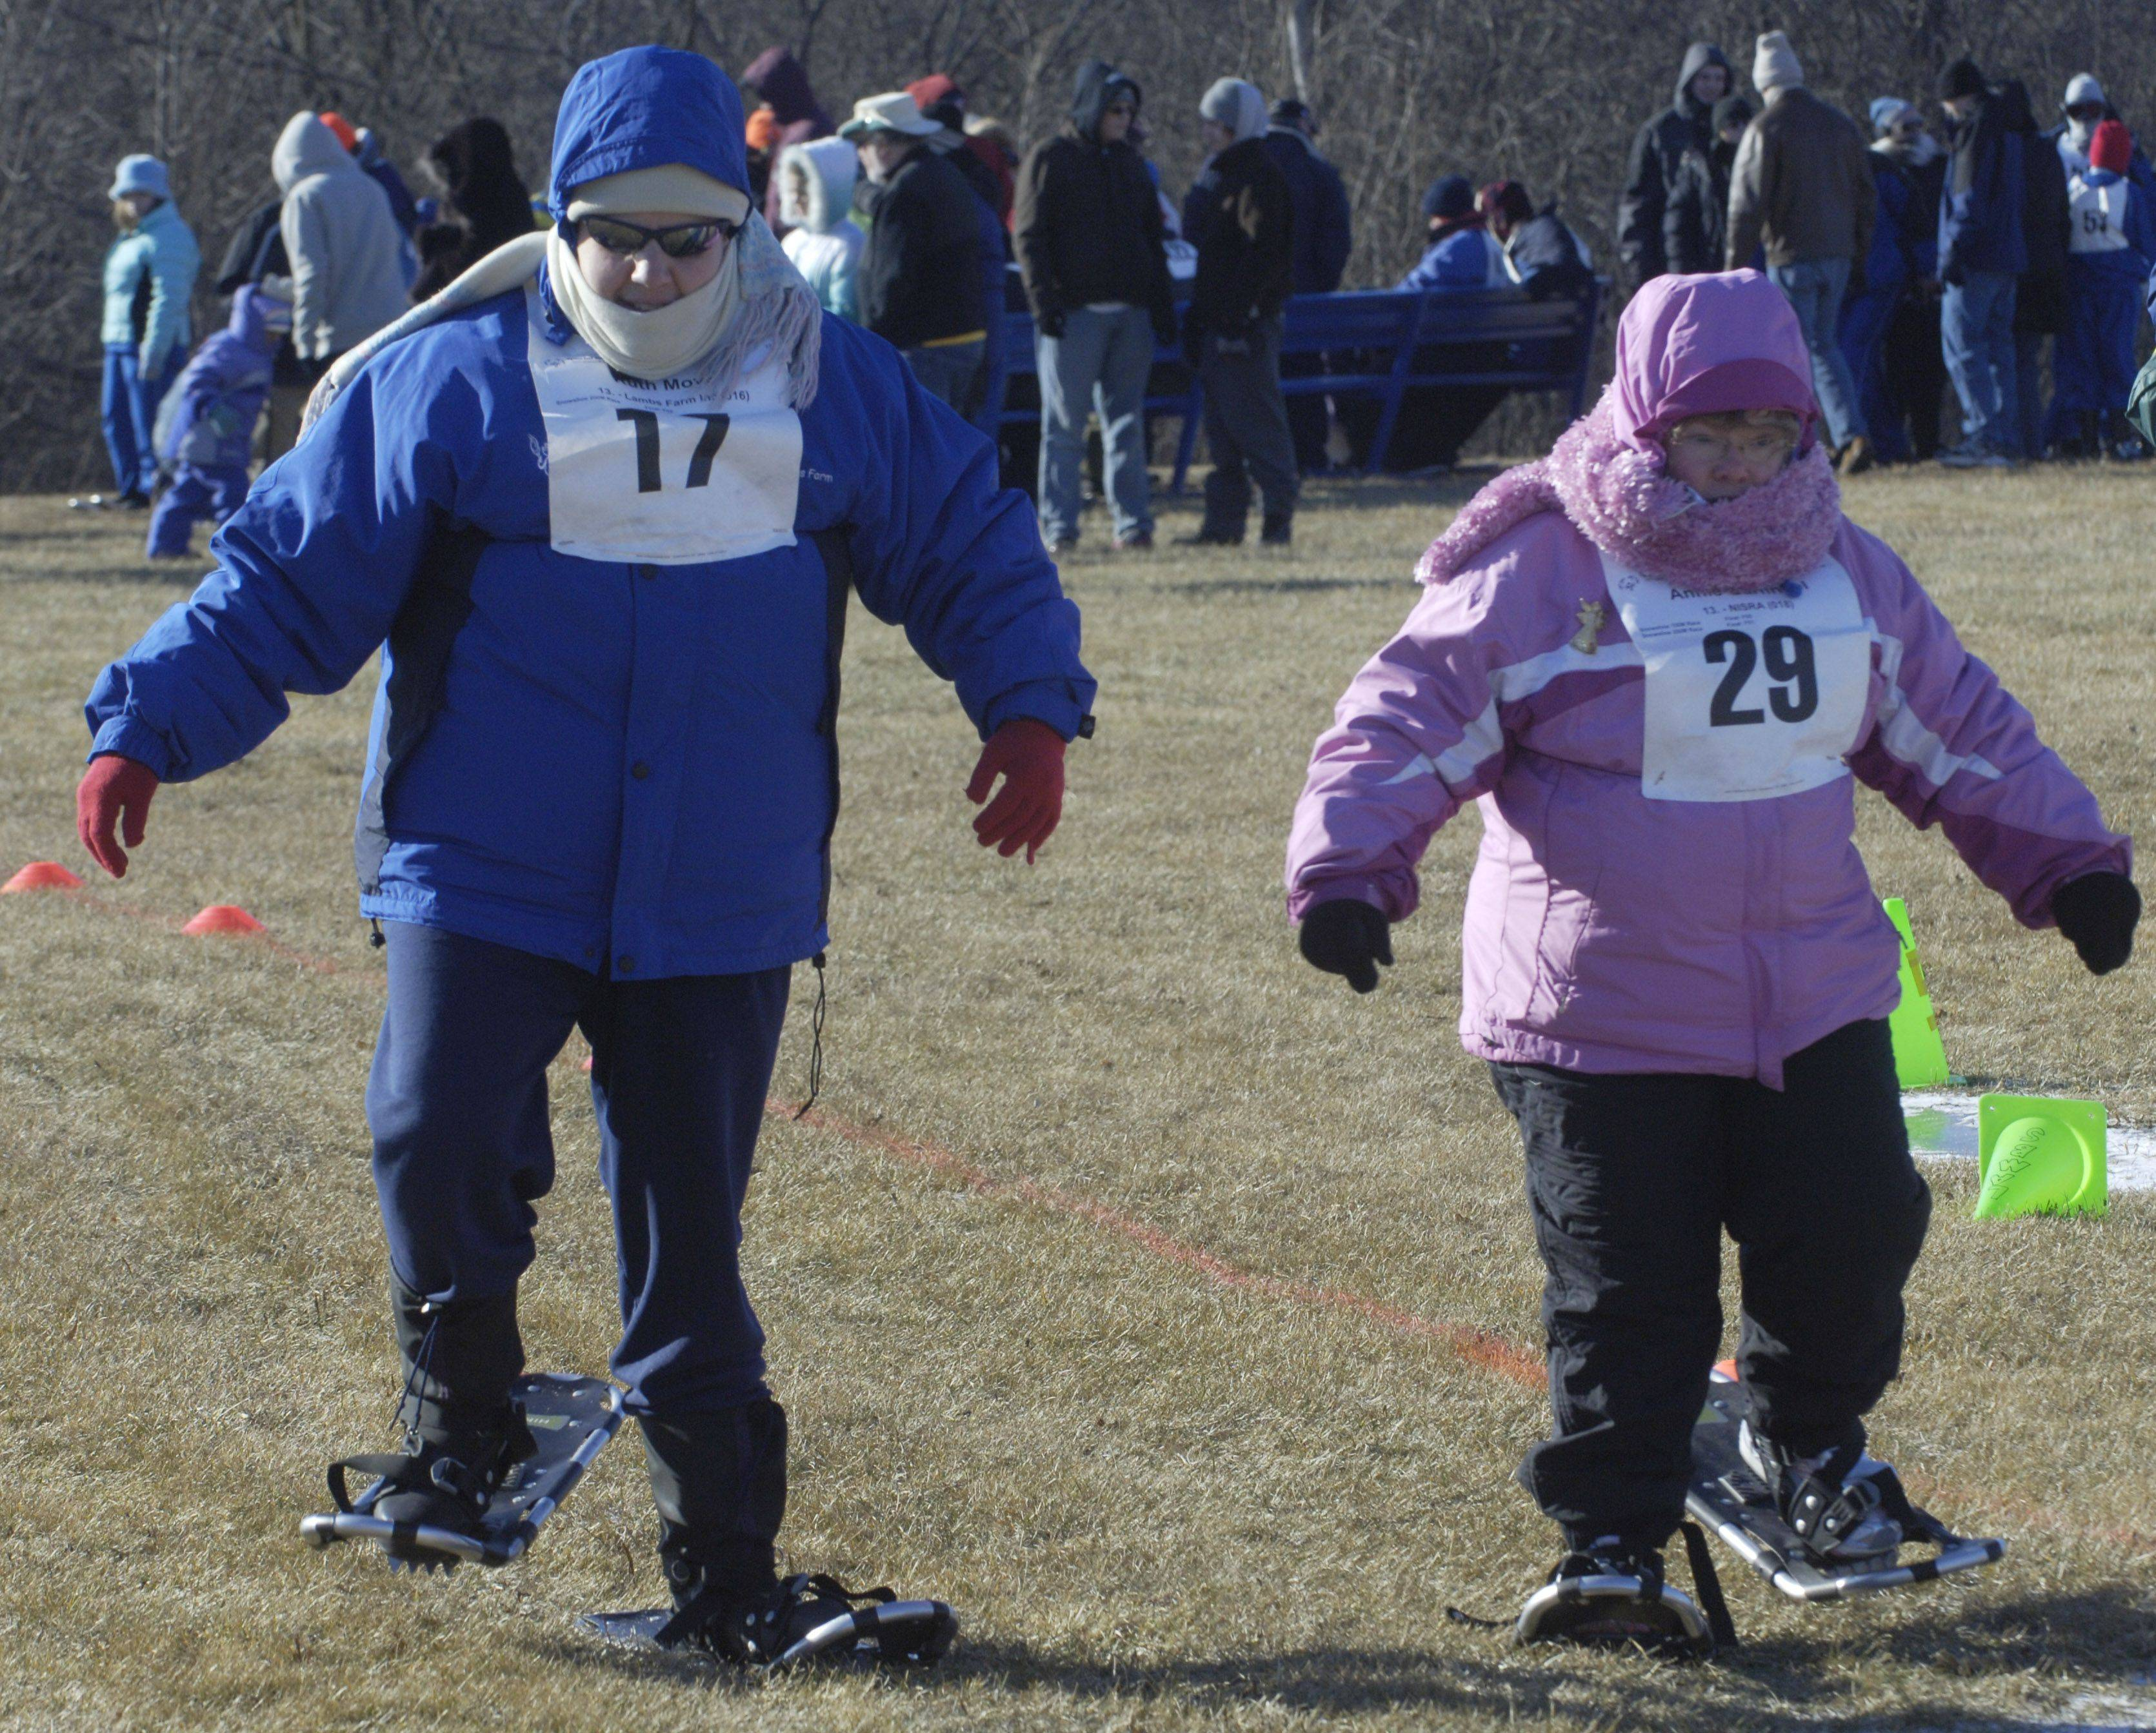 Lambs Farm employee Ruth Moyer, left, and Annie Garfinkel of NISRA race during the Special Olympics snowshoeing event.